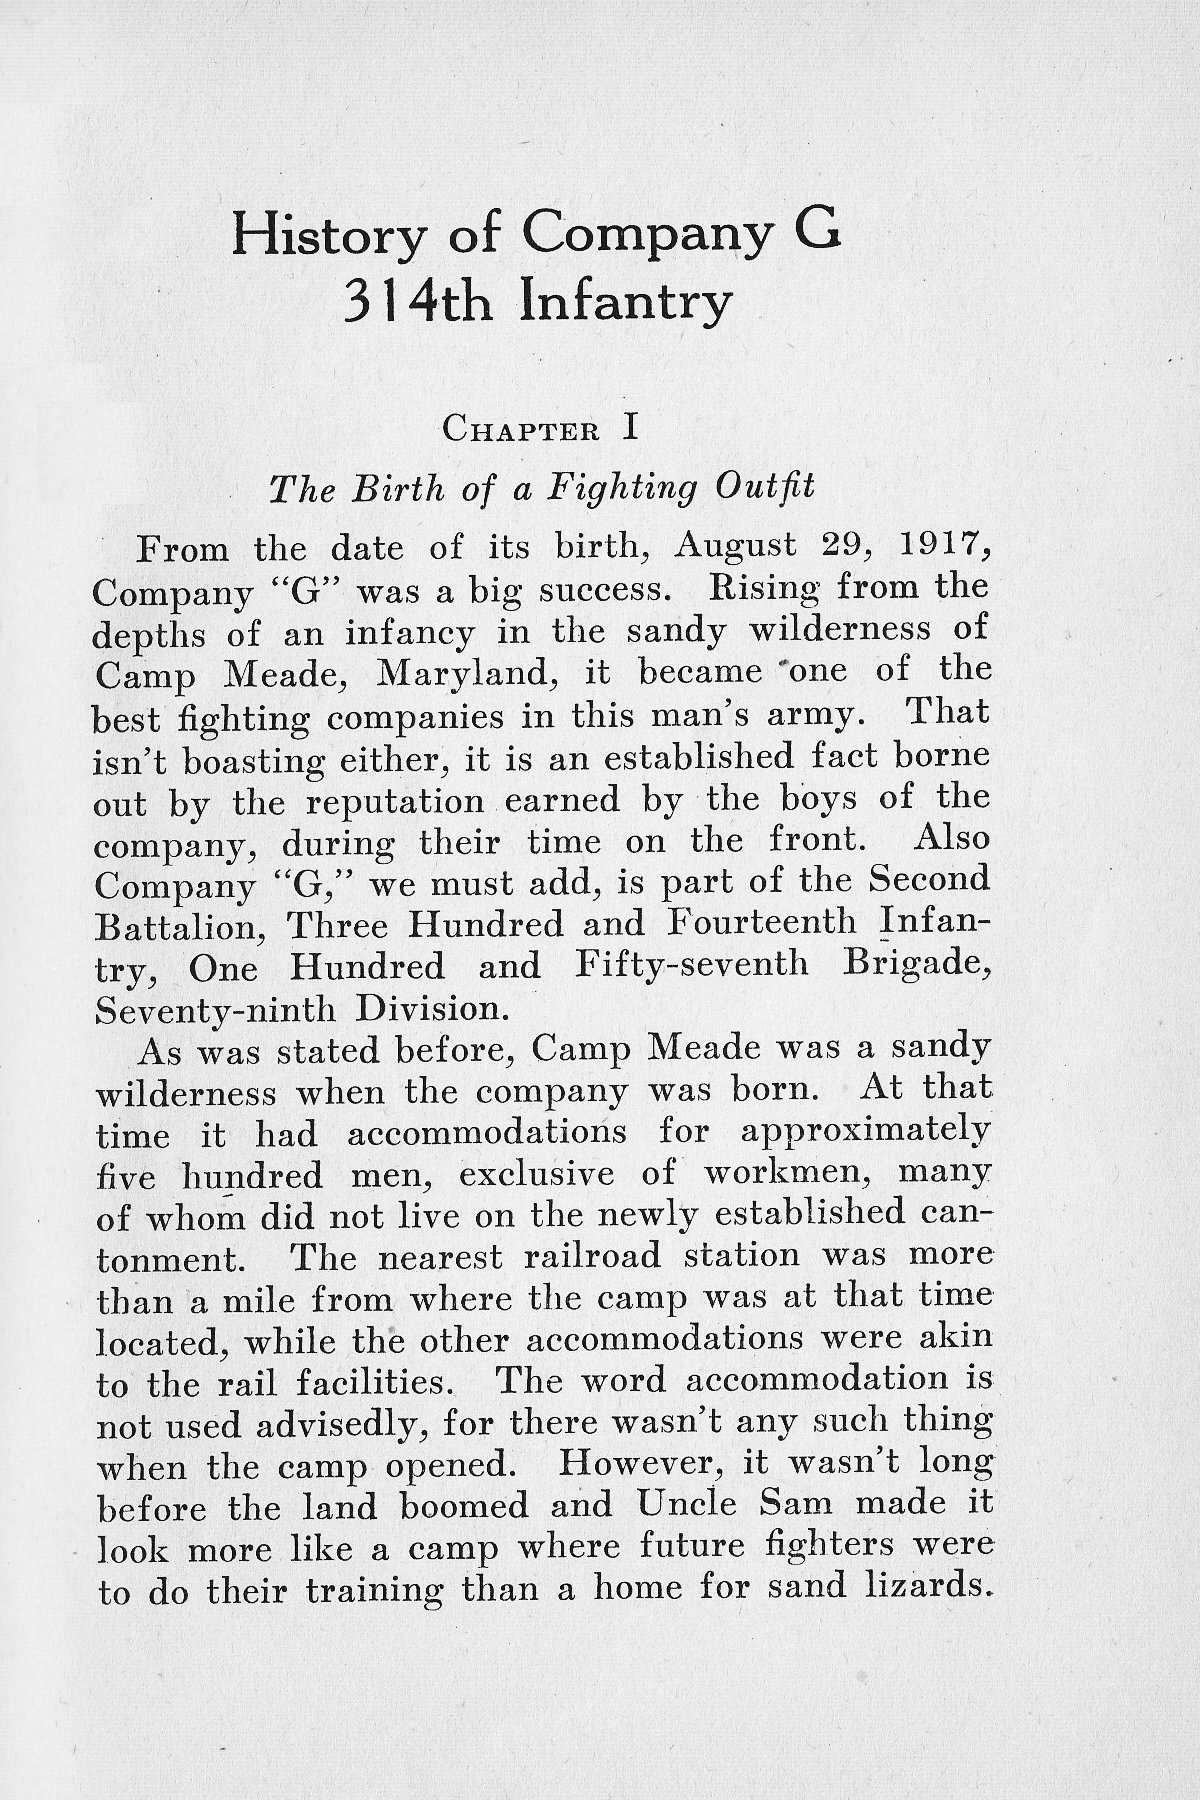 History of Company G 314th Infanty - Page 001